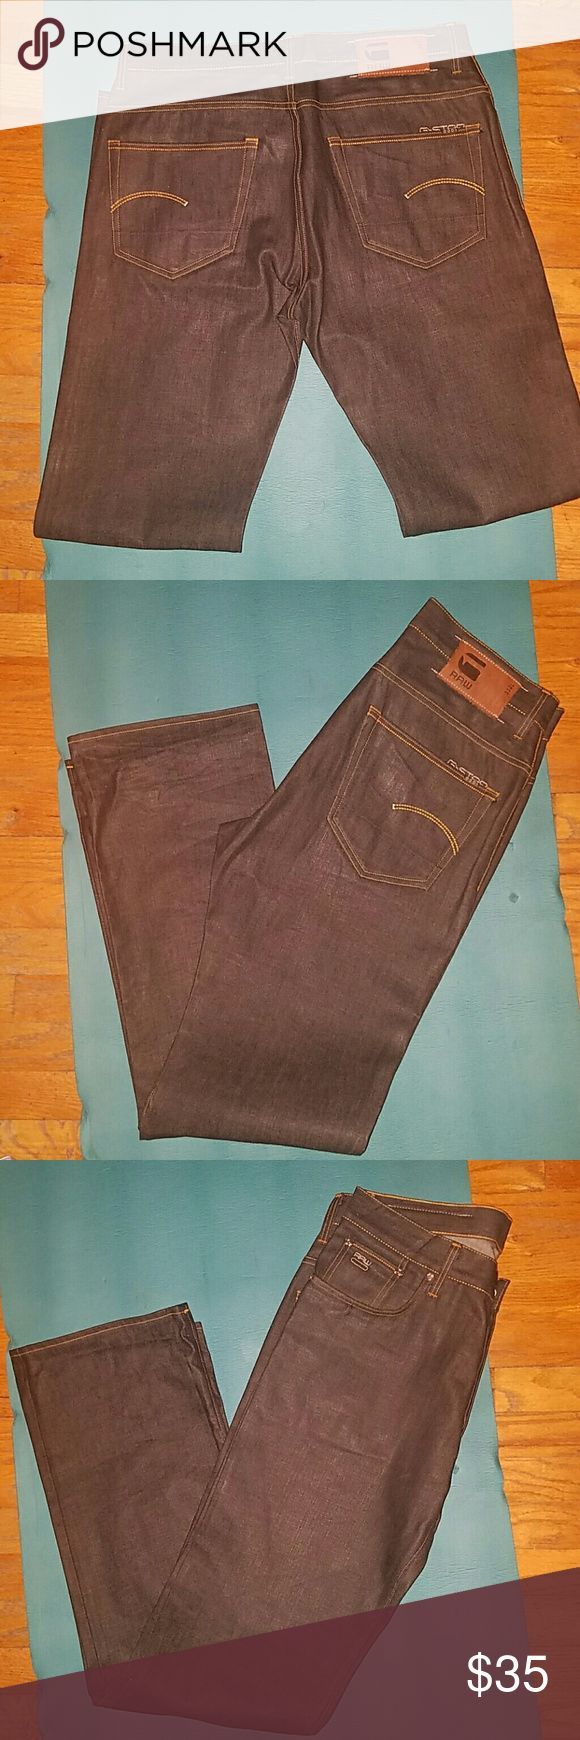 Men Blue G-Star Raw Jeans size 34/36 These are practically brand new worn once men G-Star Raw Jeans size 34/36 style  3301 loose fit jeans. G-Star Jeans Straight